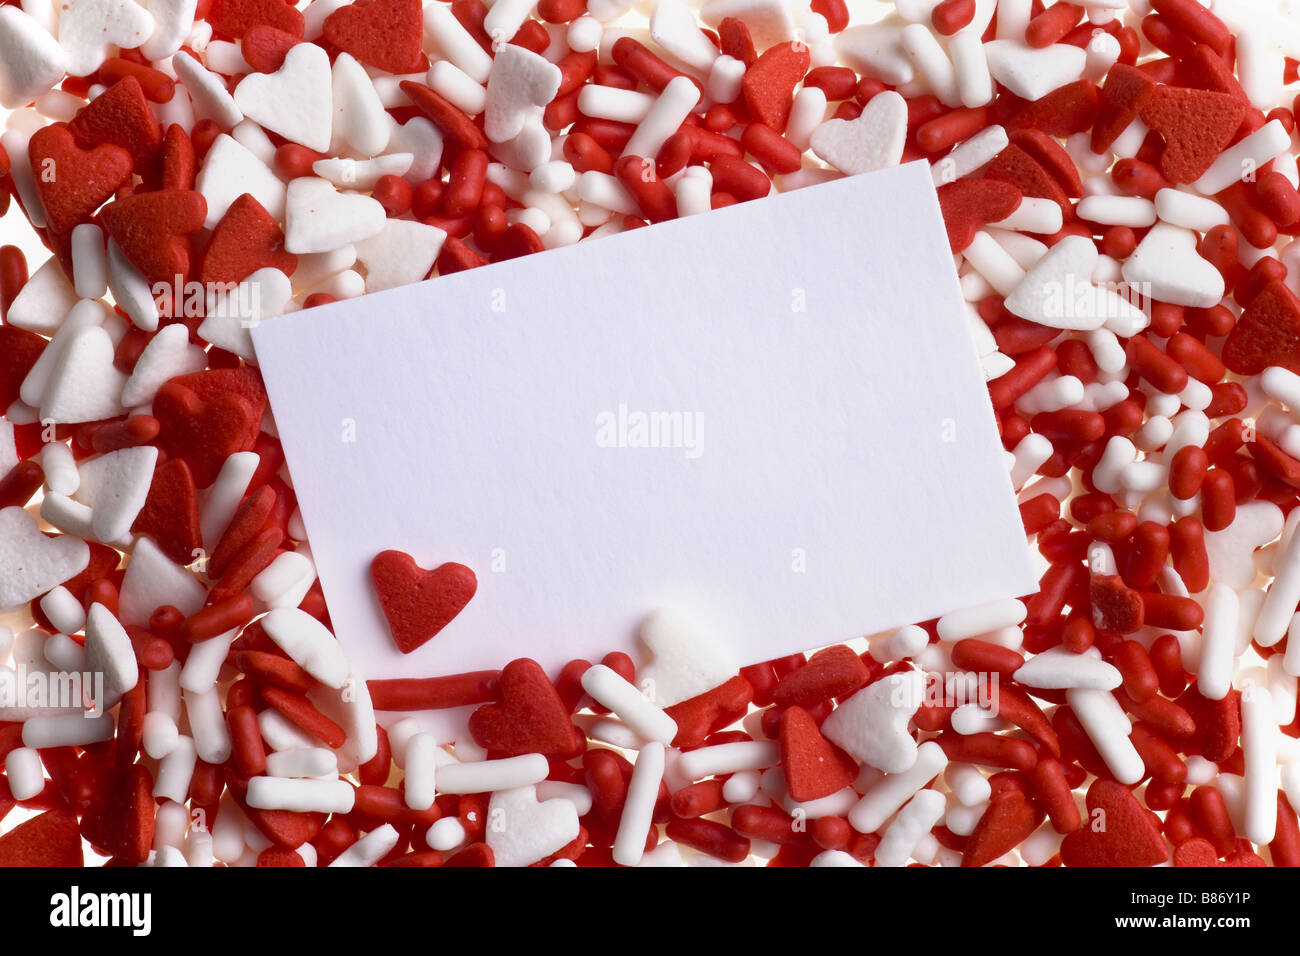 Valentine red and white heart sprinkles background with card - Stock Image